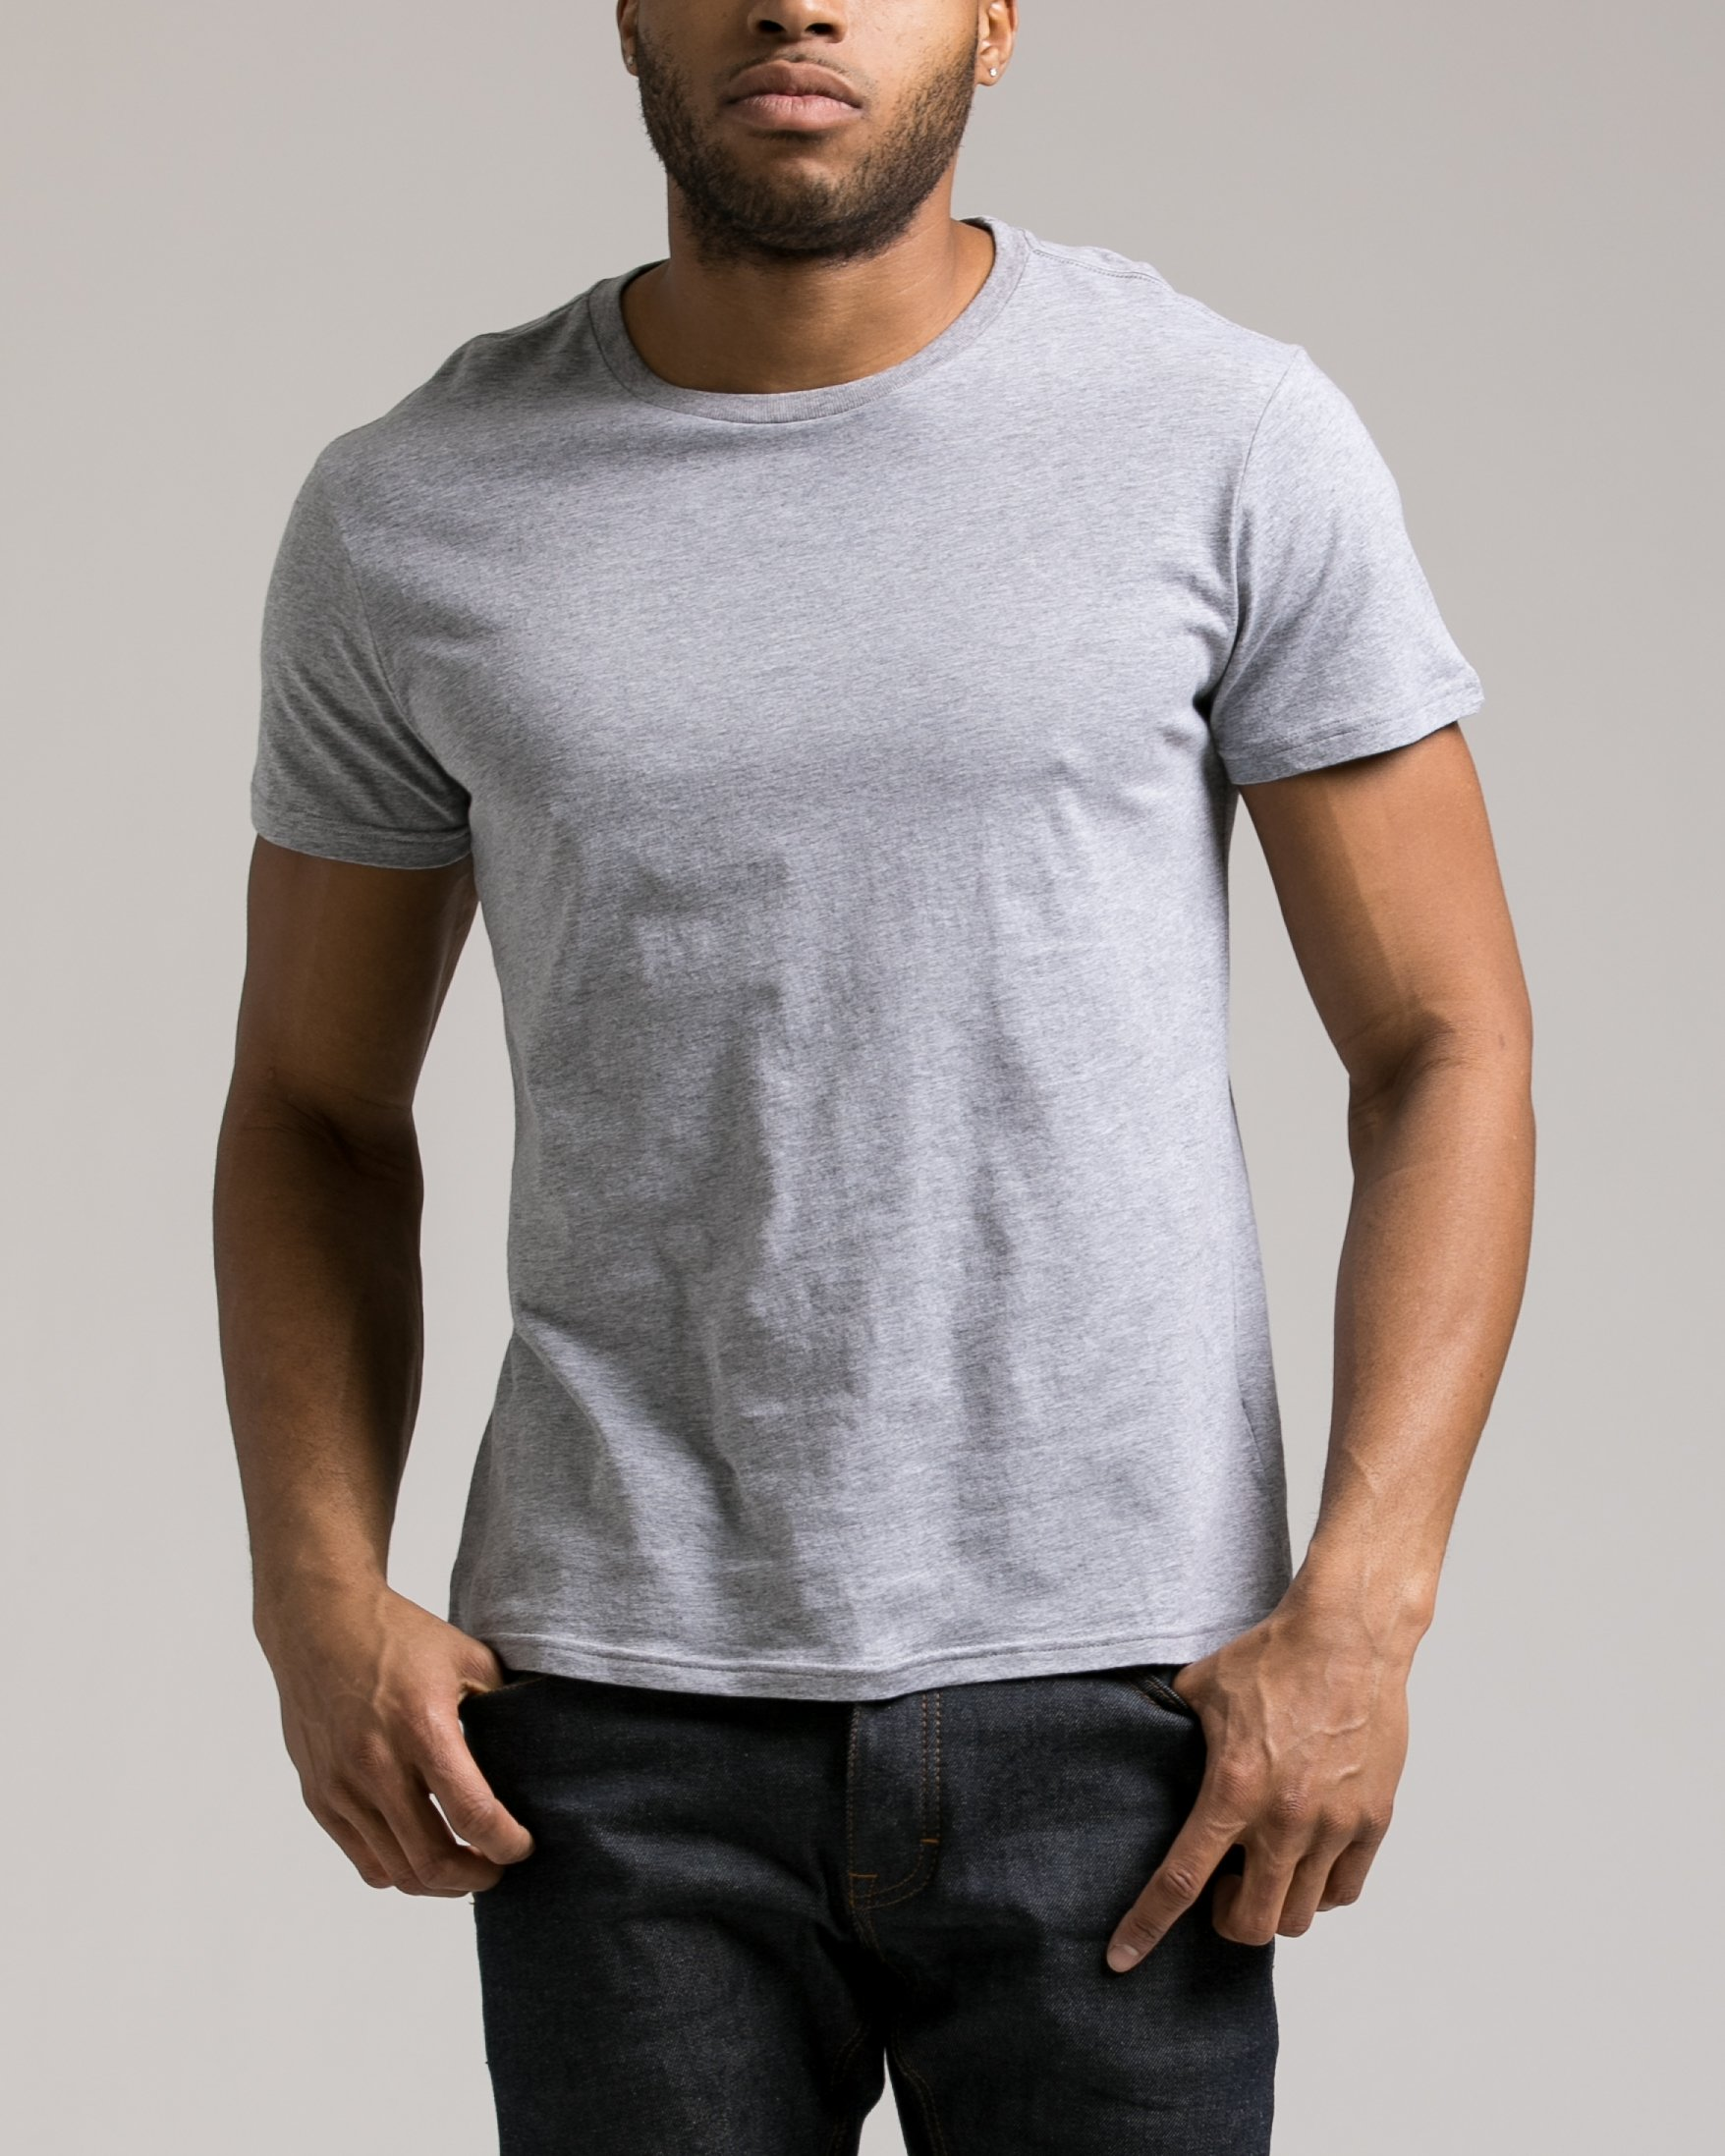 The Daily Tee 2.0 – JackThreads